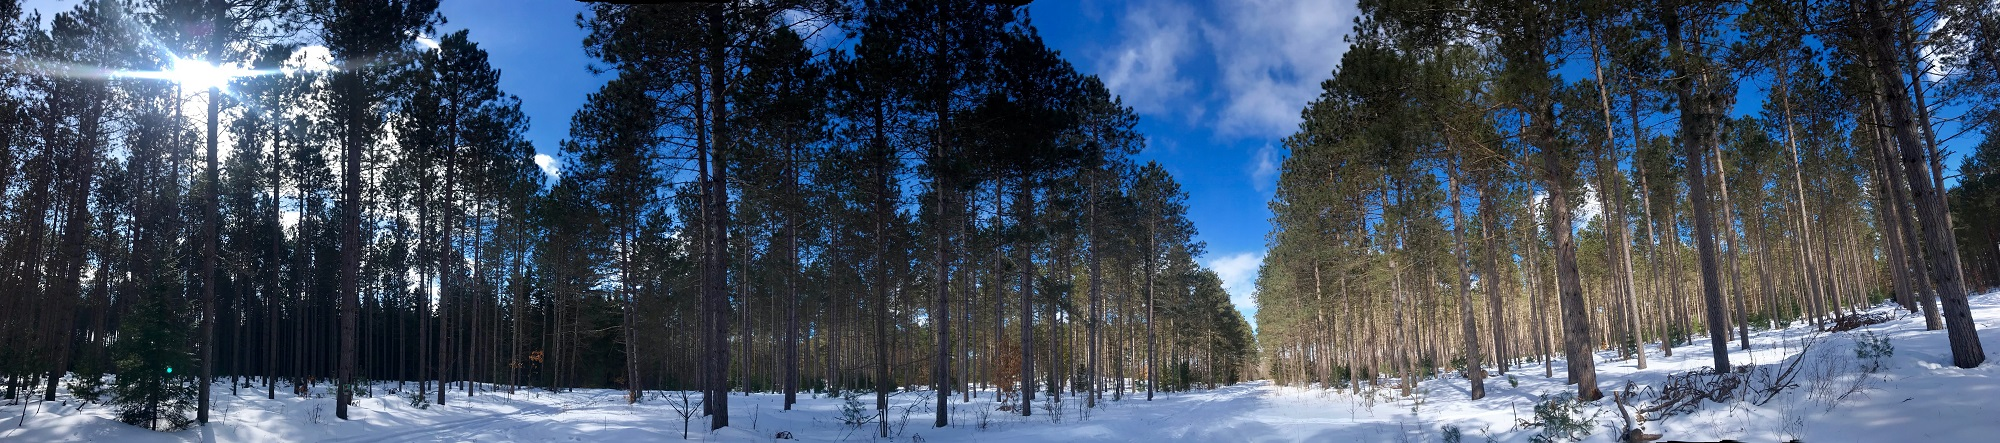 County Forest Winter Pano 1.jpg